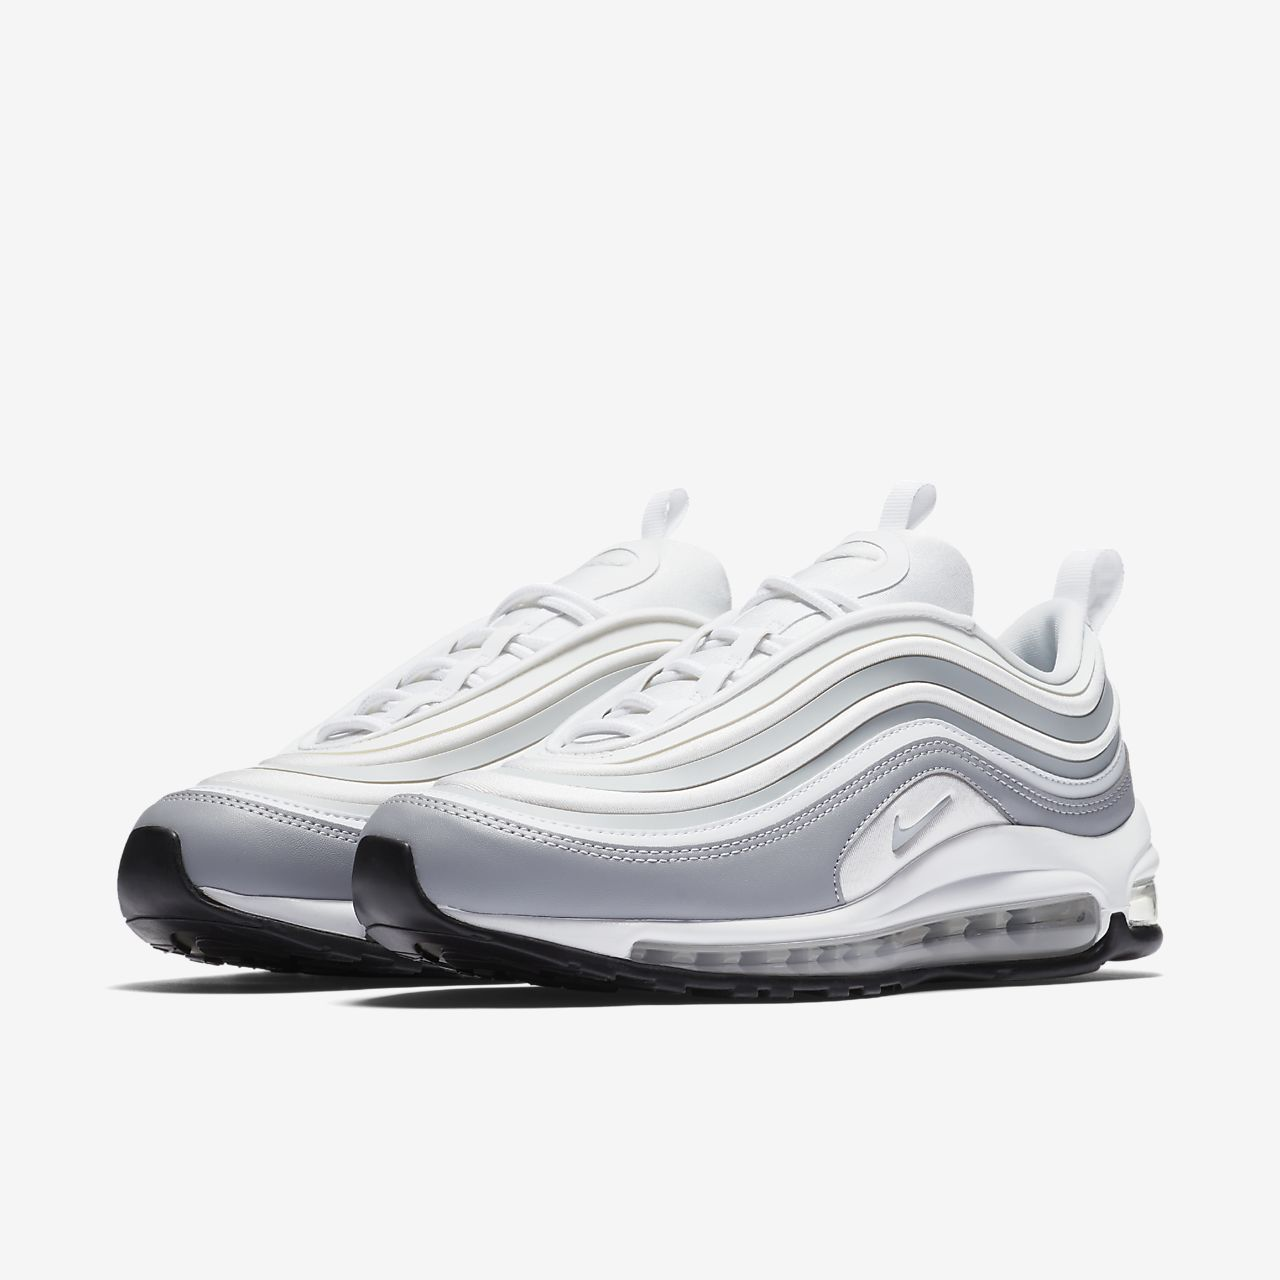 nike air max ultra 97 with